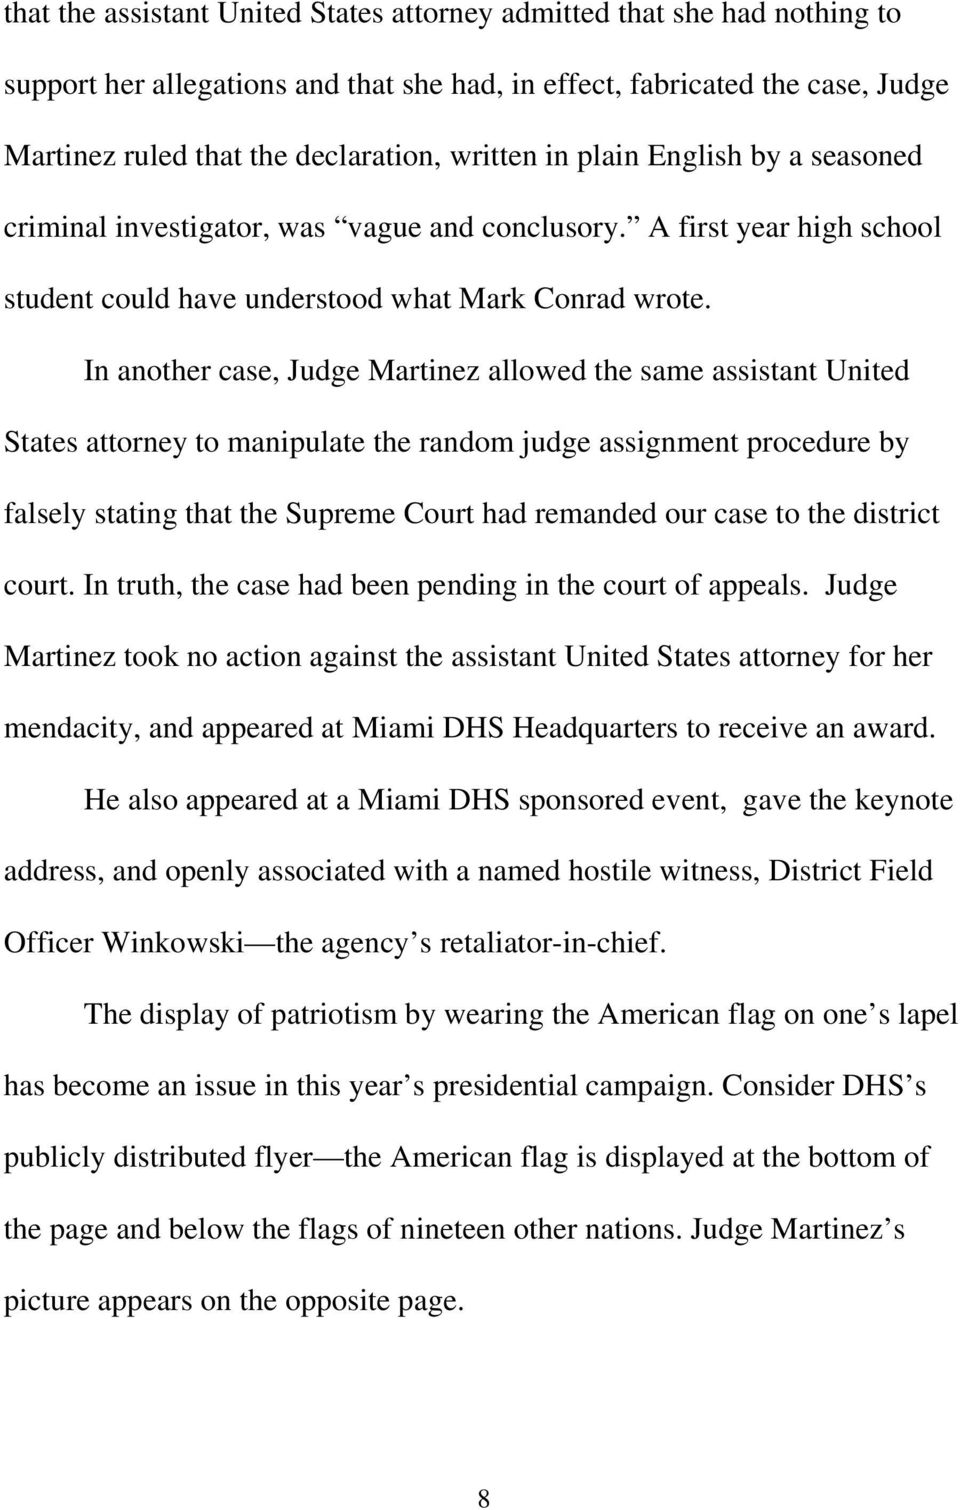 In another case, Judge Martinez allowed the same assistant United States attorney to manipulate the random judge assignment procedure by falsely stating that the Supreme Court had remanded our case